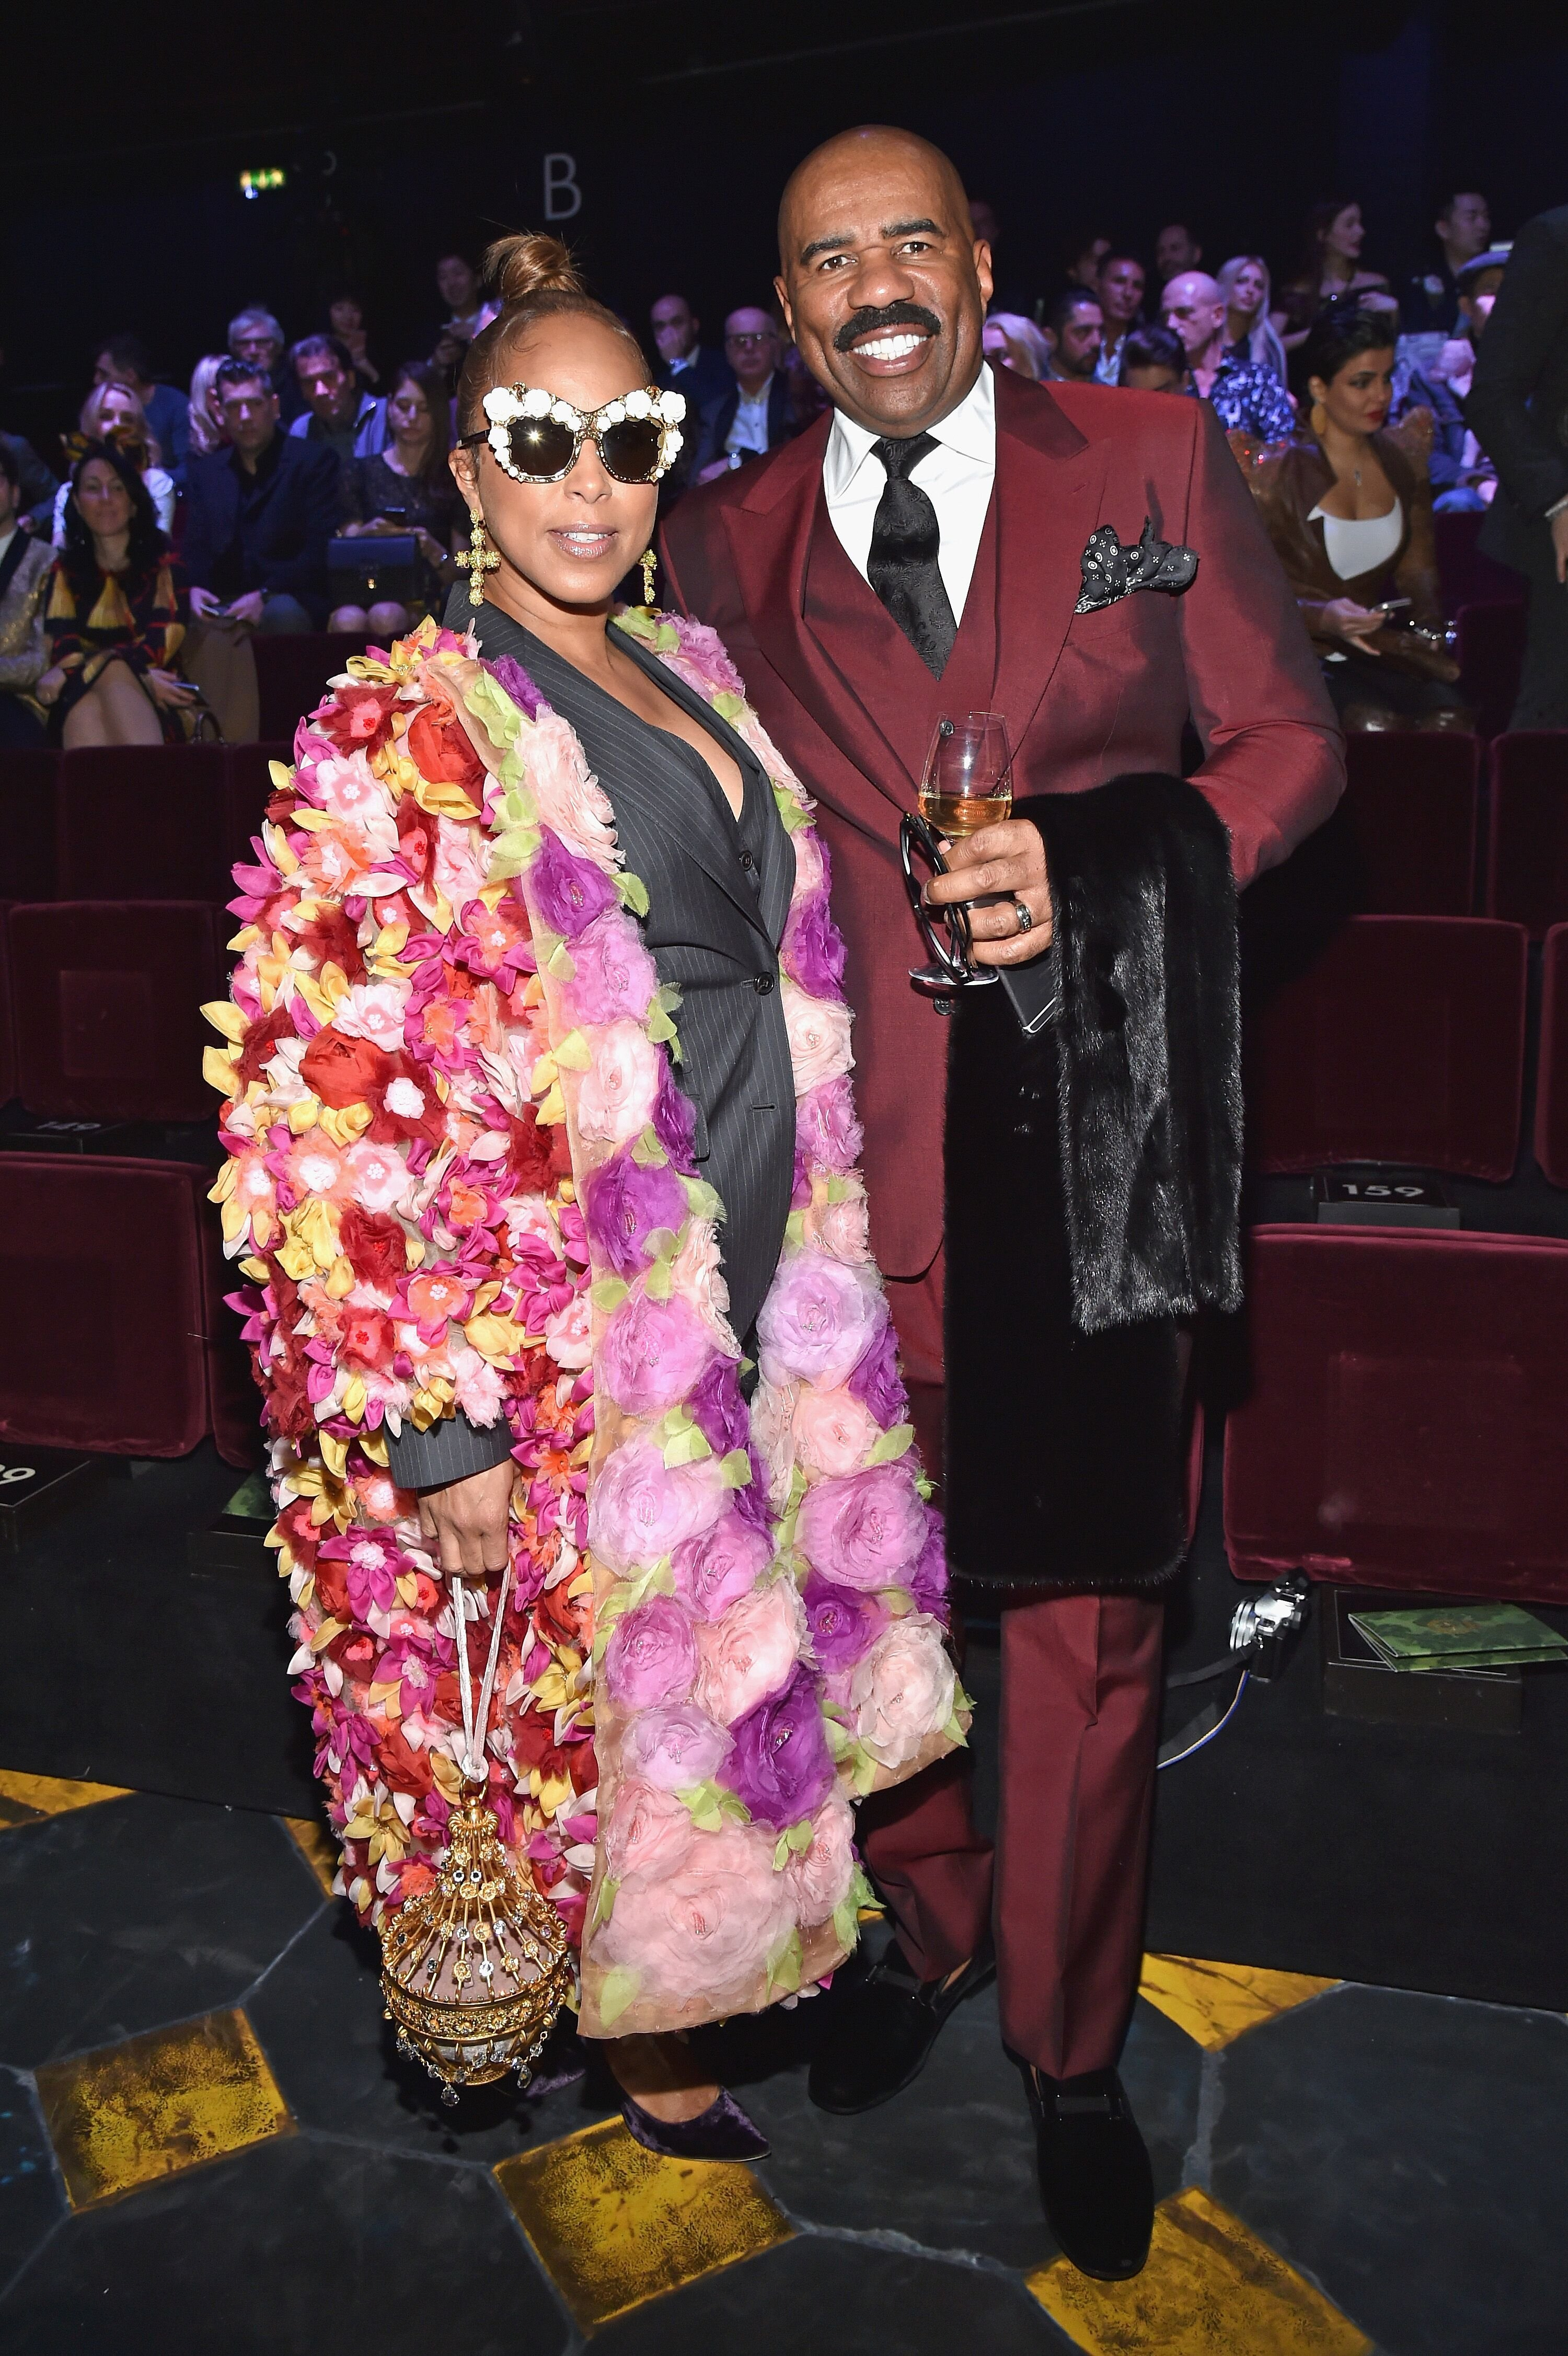 Marjorie Harvey and Steve Harvey attend the Dolce & Gabbana show during Milan Men's Fashion Week Fall/Winter 2017/18 on January 14, 2017. | Photo: Getty Images